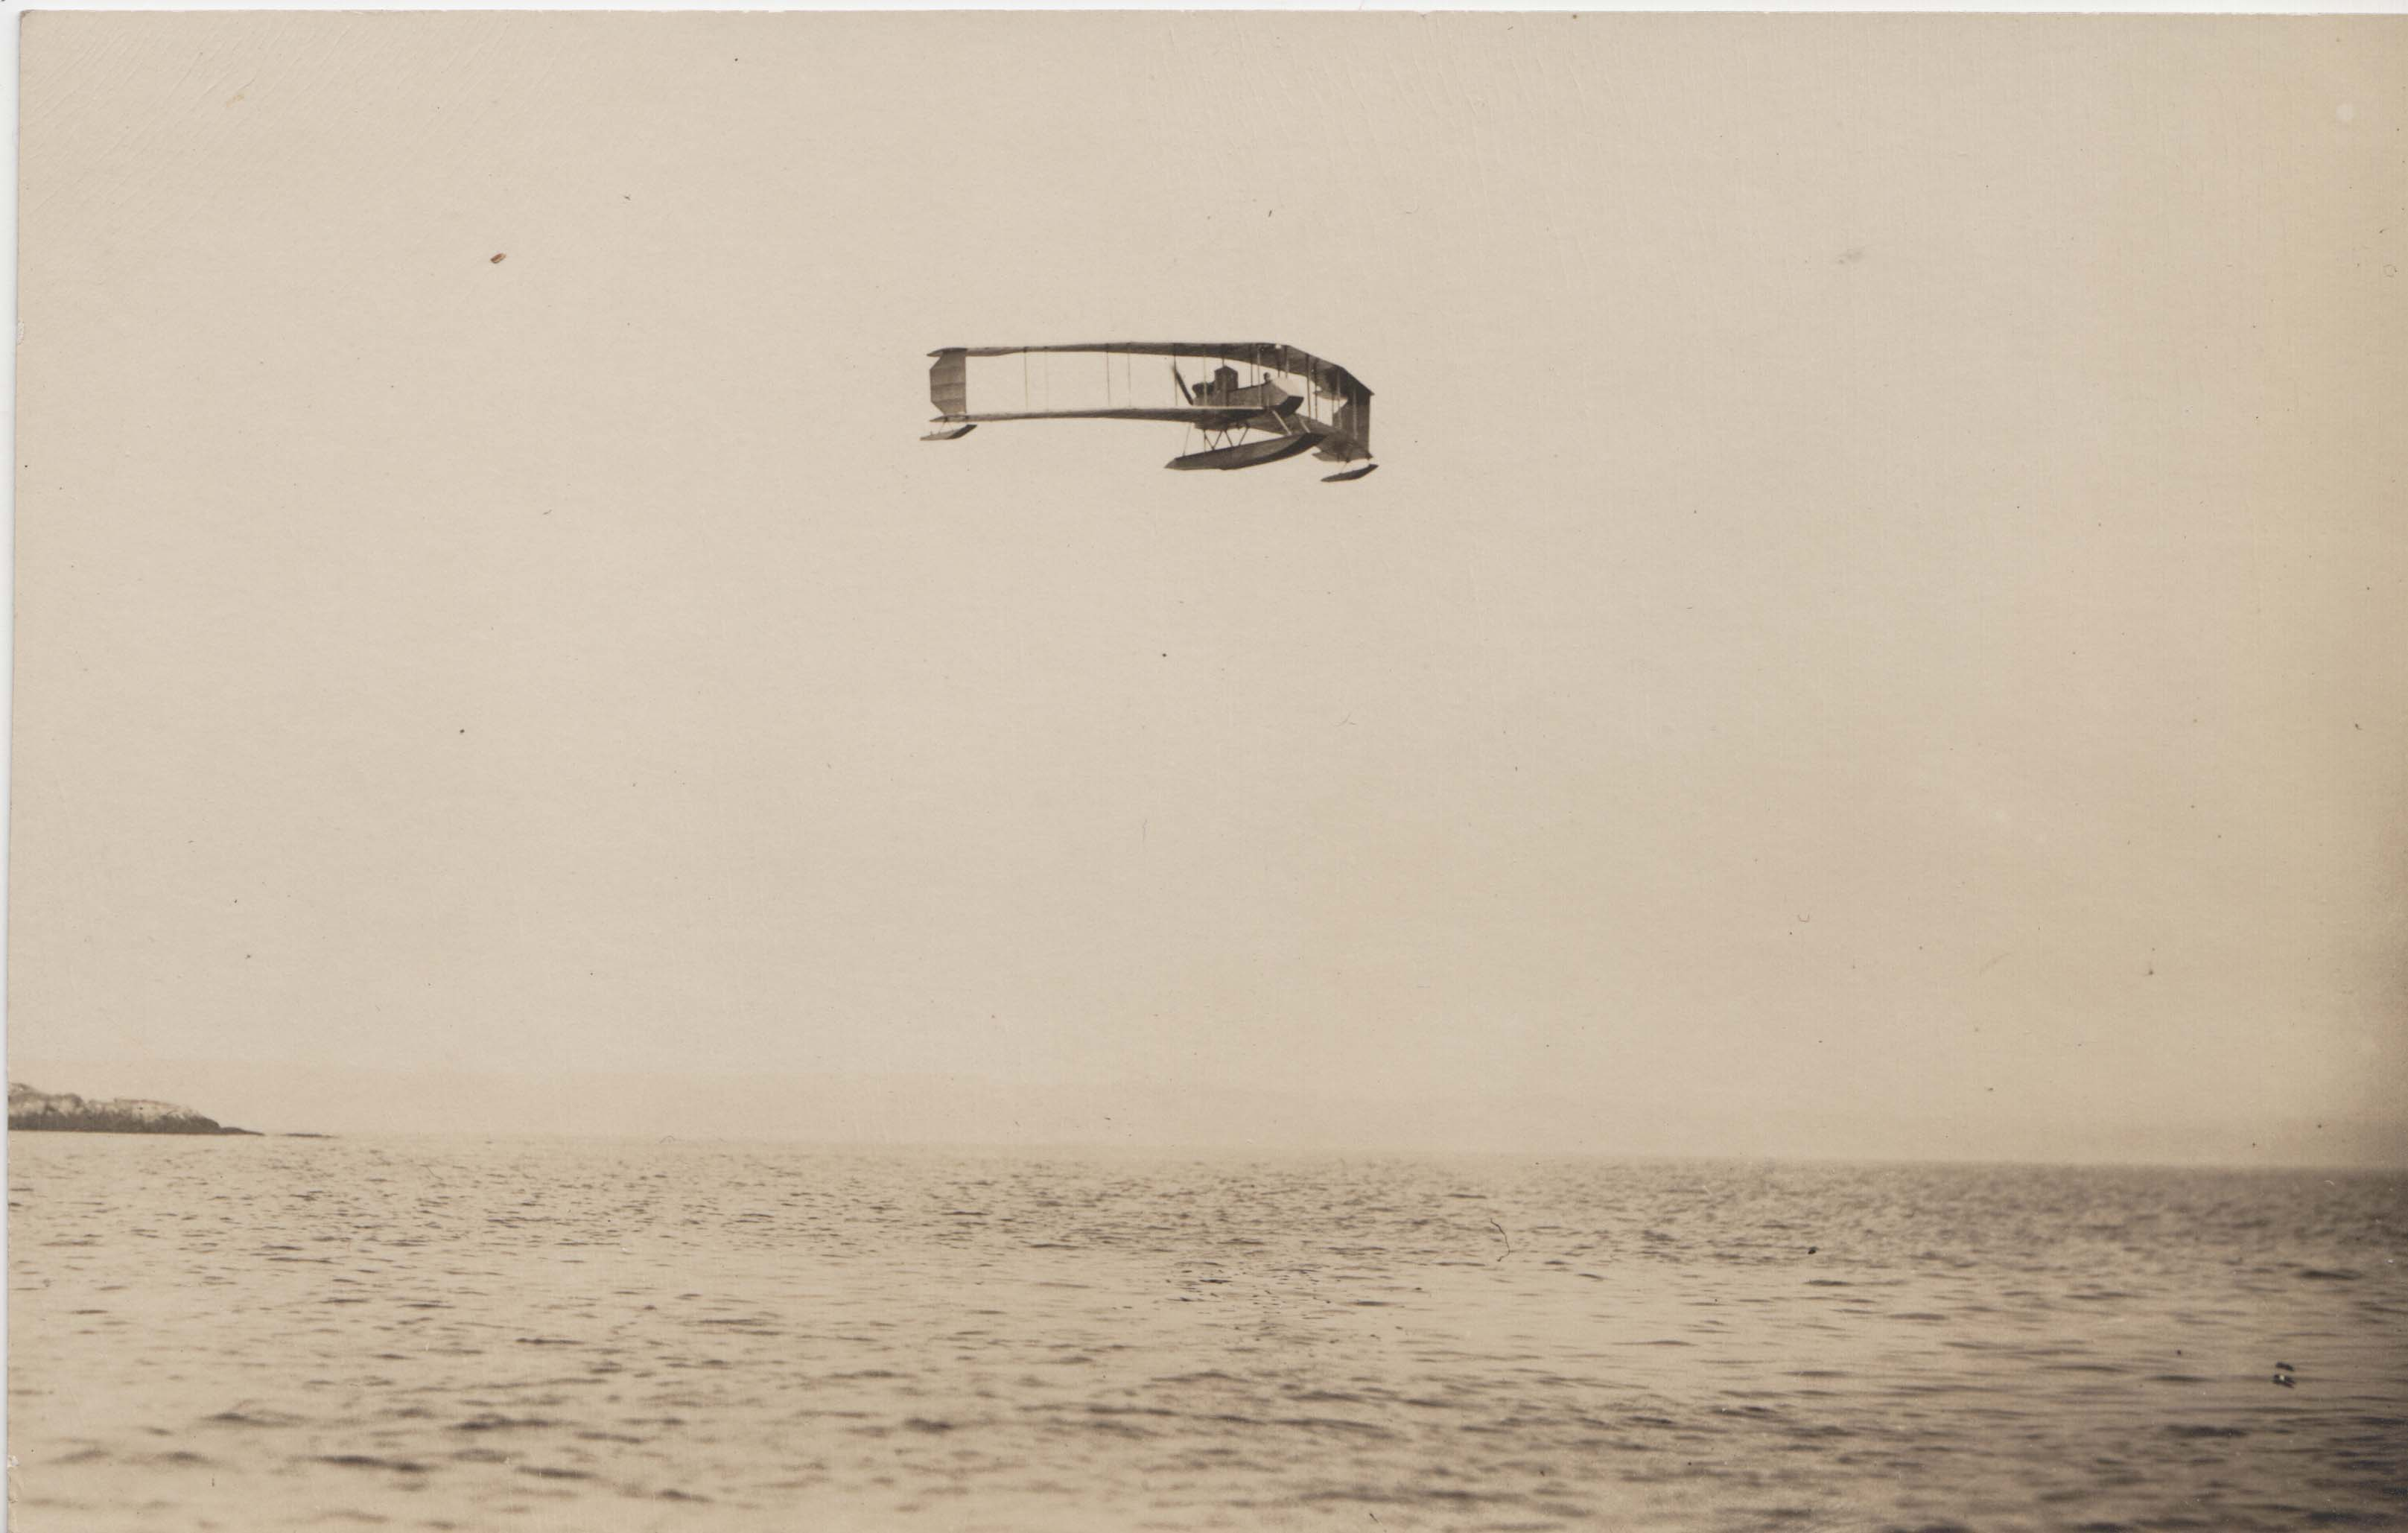 0046A Flying Boat in Air